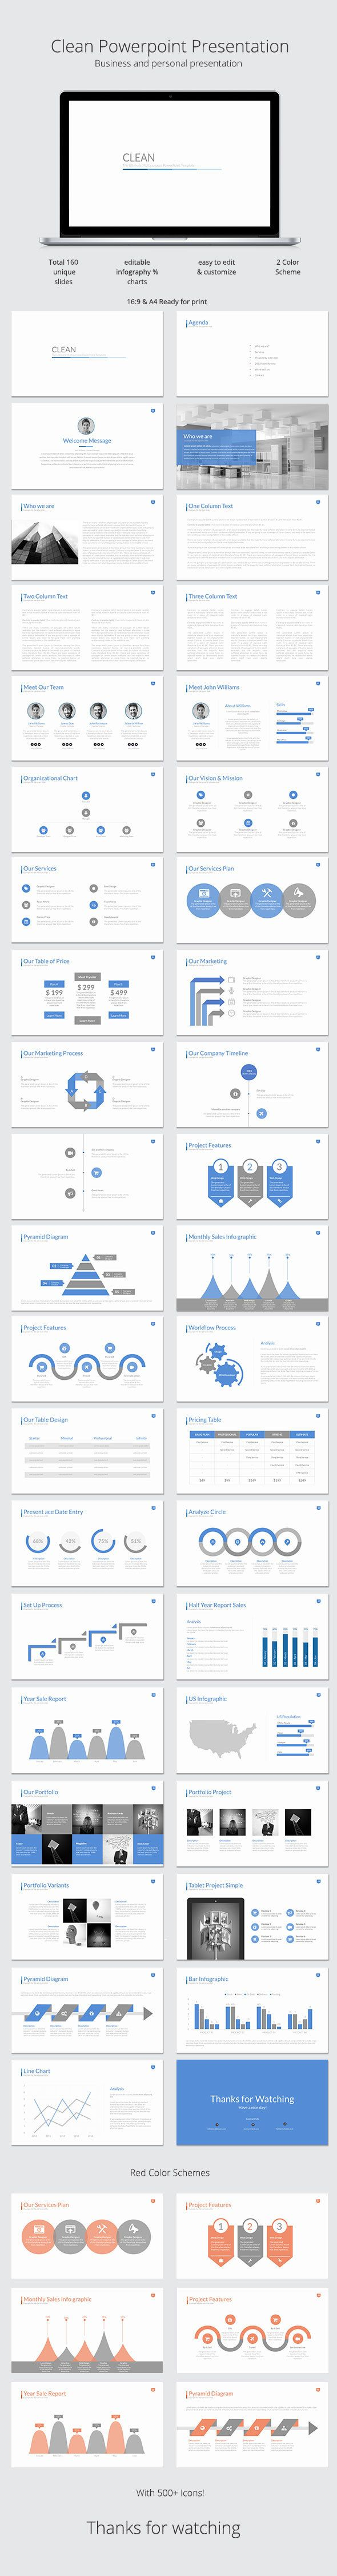 Coolmathgamesus  Mesmerizing  Ideas About Powerpoint Presentations On Pinterest With Great Clean Powerpoint Template With Astonishing Ms Powerpoint  Tutorial Pdf Also How To Make An Animation On Powerpoint In Addition Powerpoint Themes Downloads And Presentation Powerpoint Templates Free As Well As Convert Powerpoint  To  Additionally Windows Powerpoint  Free Download From Pinterestcom With Coolmathgamesus  Great  Ideas About Powerpoint Presentations On Pinterest With Astonishing Clean Powerpoint Template And Mesmerizing Ms Powerpoint  Tutorial Pdf Also How To Make An Animation On Powerpoint In Addition Powerpoint Themes Downloads From Pinterestcom